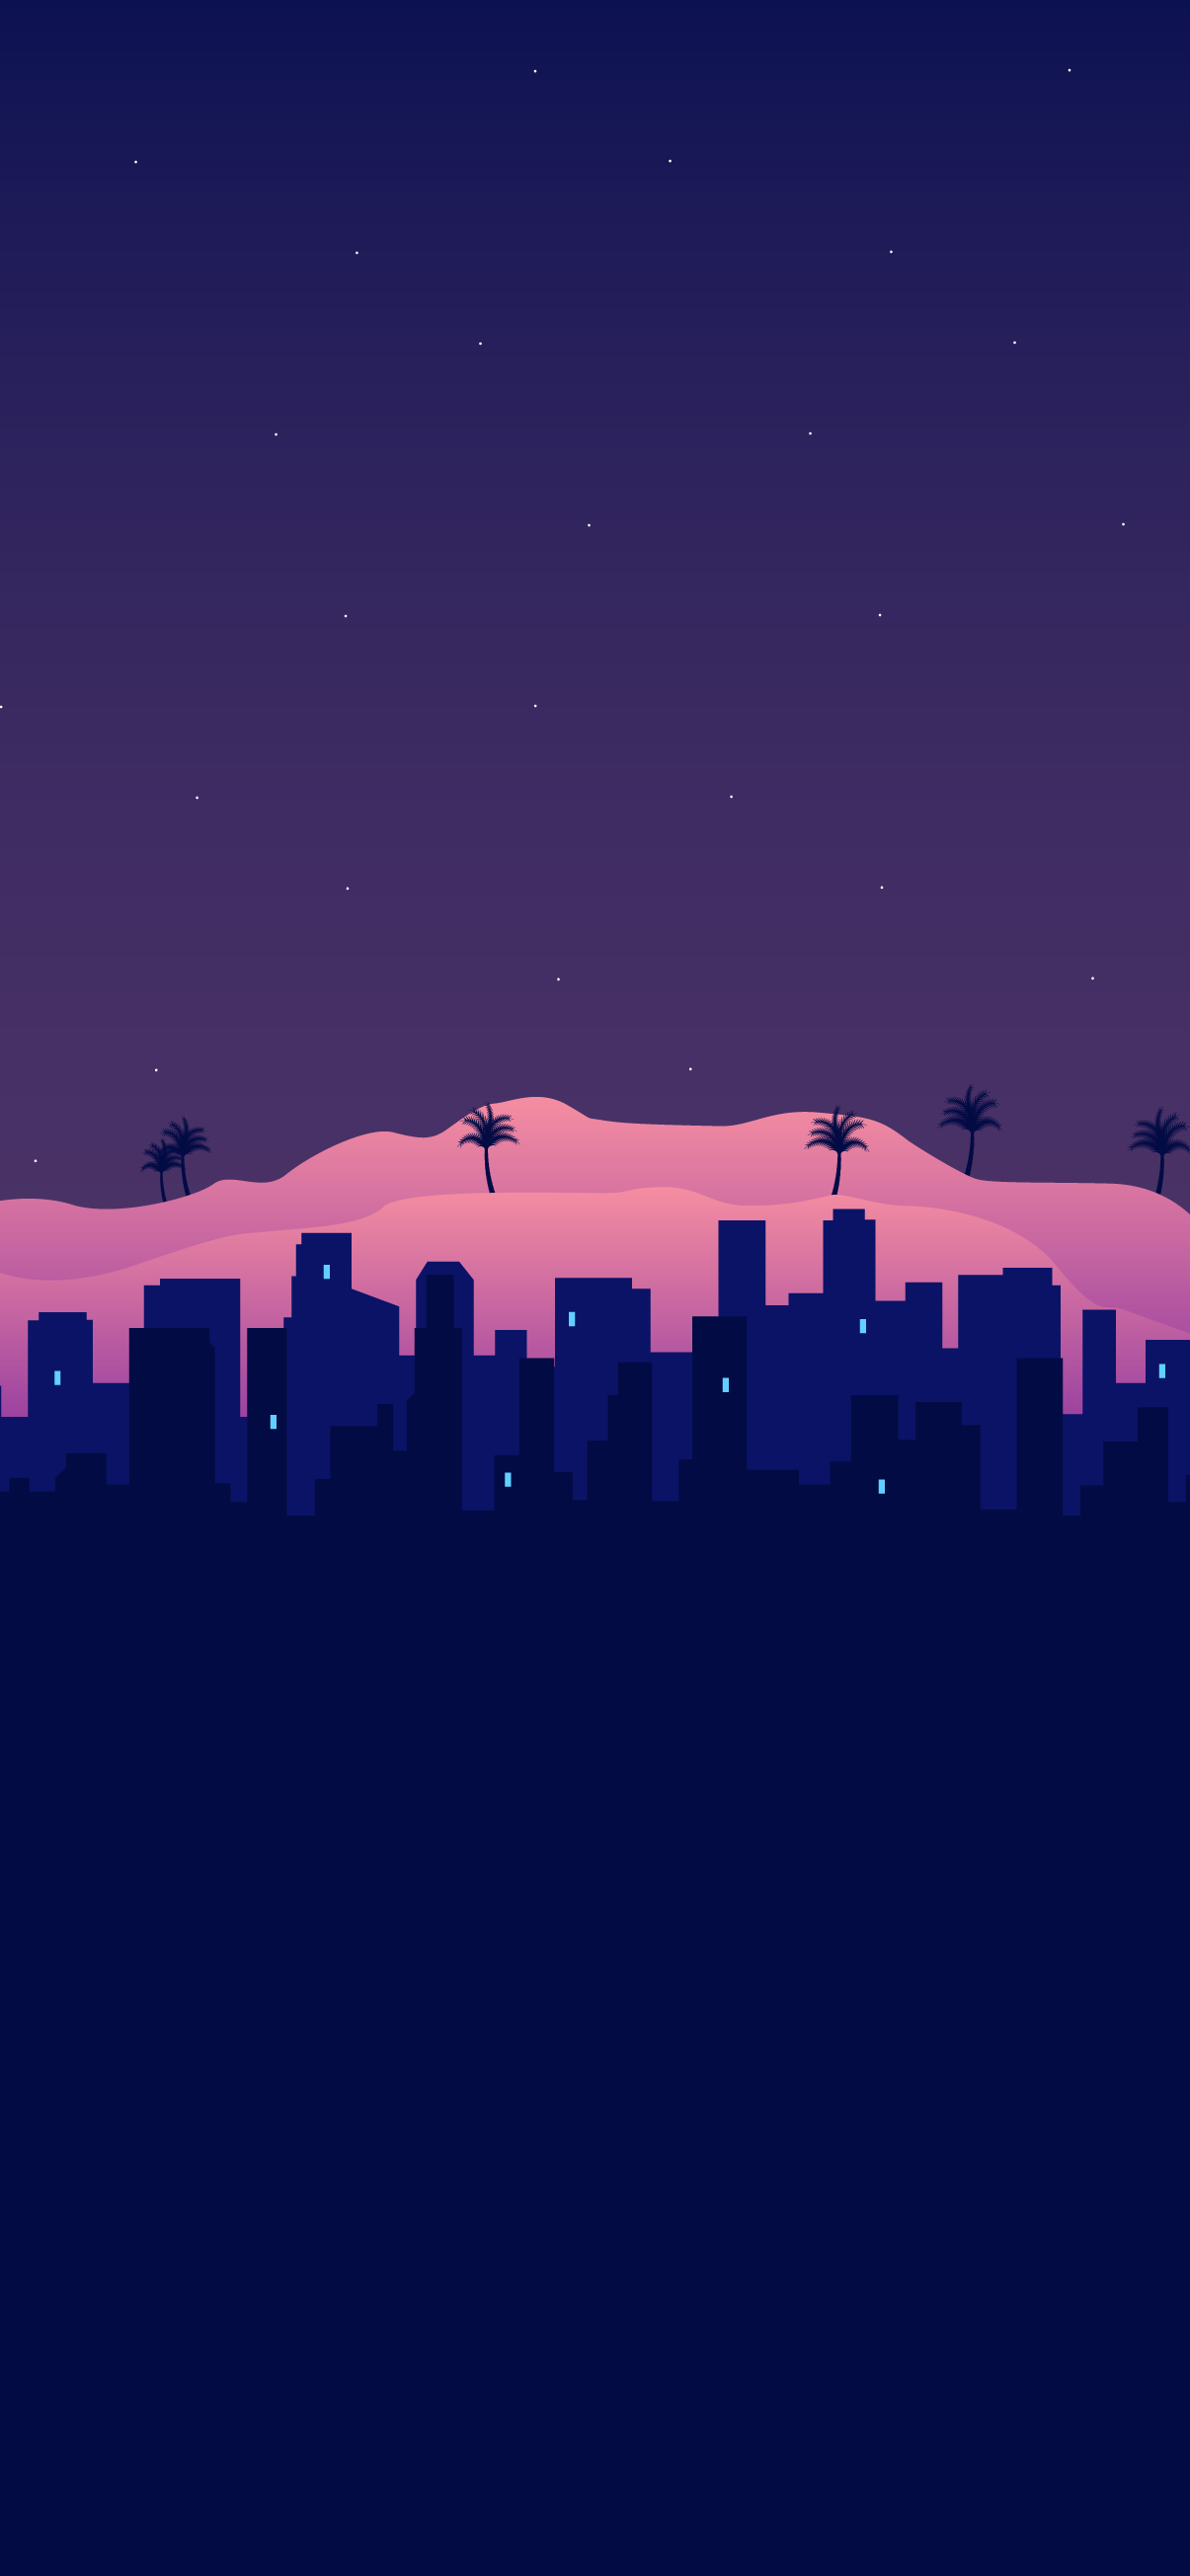 Aesthetic city wallpapers 4k